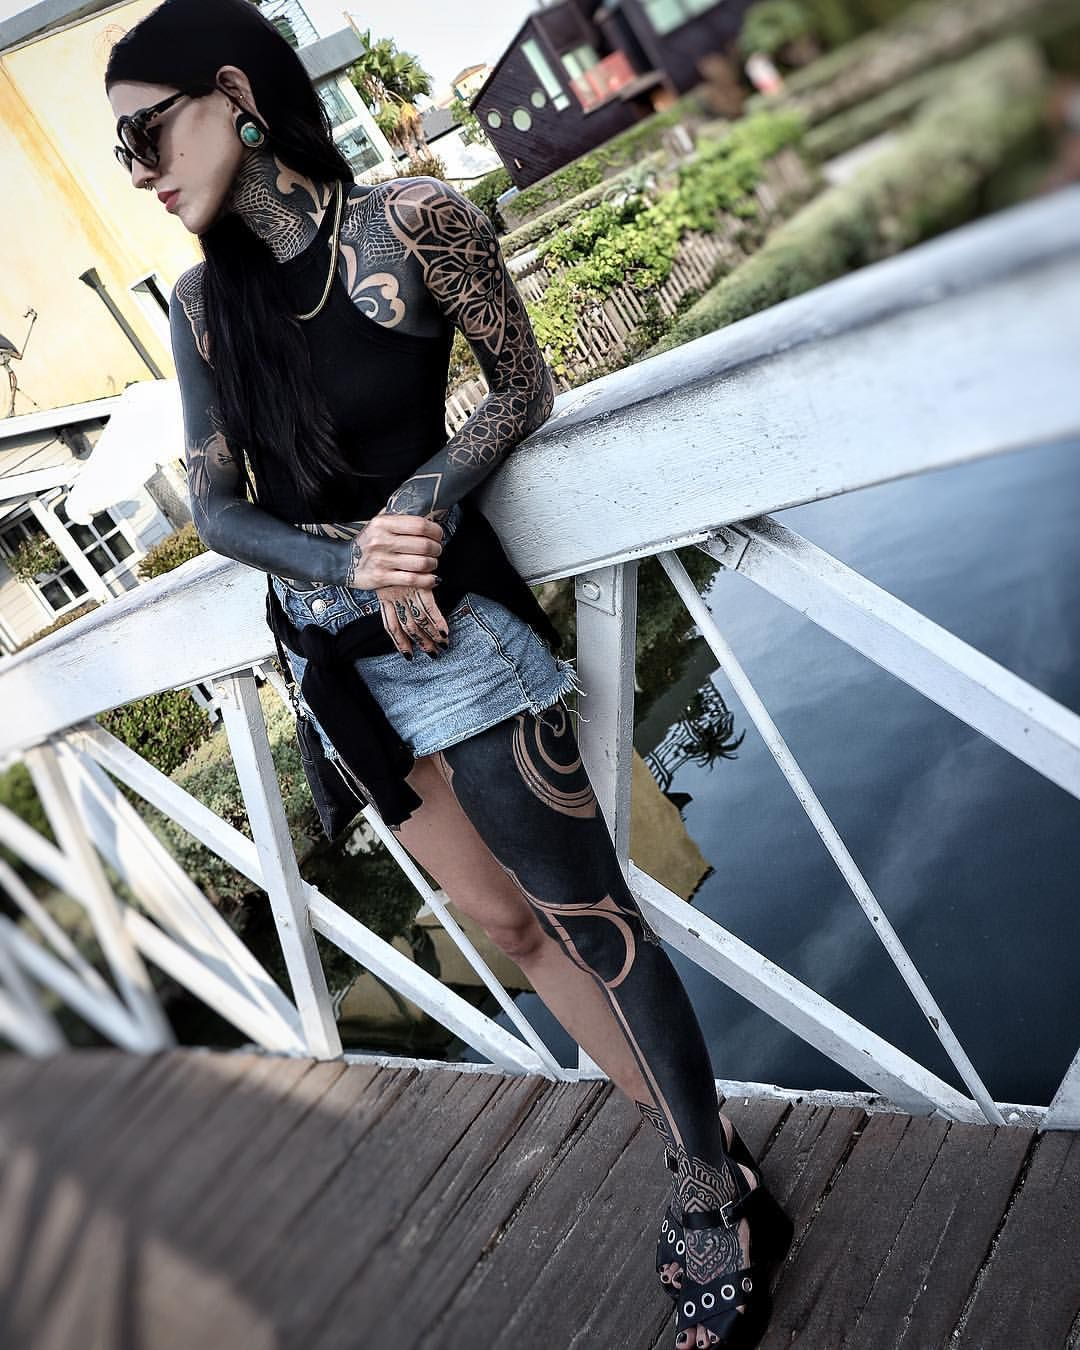 Solid Black Tattoos For Women Floral Tattoo Sleeve Black Sleeve Tattoo Sleeve Tattoos For Women